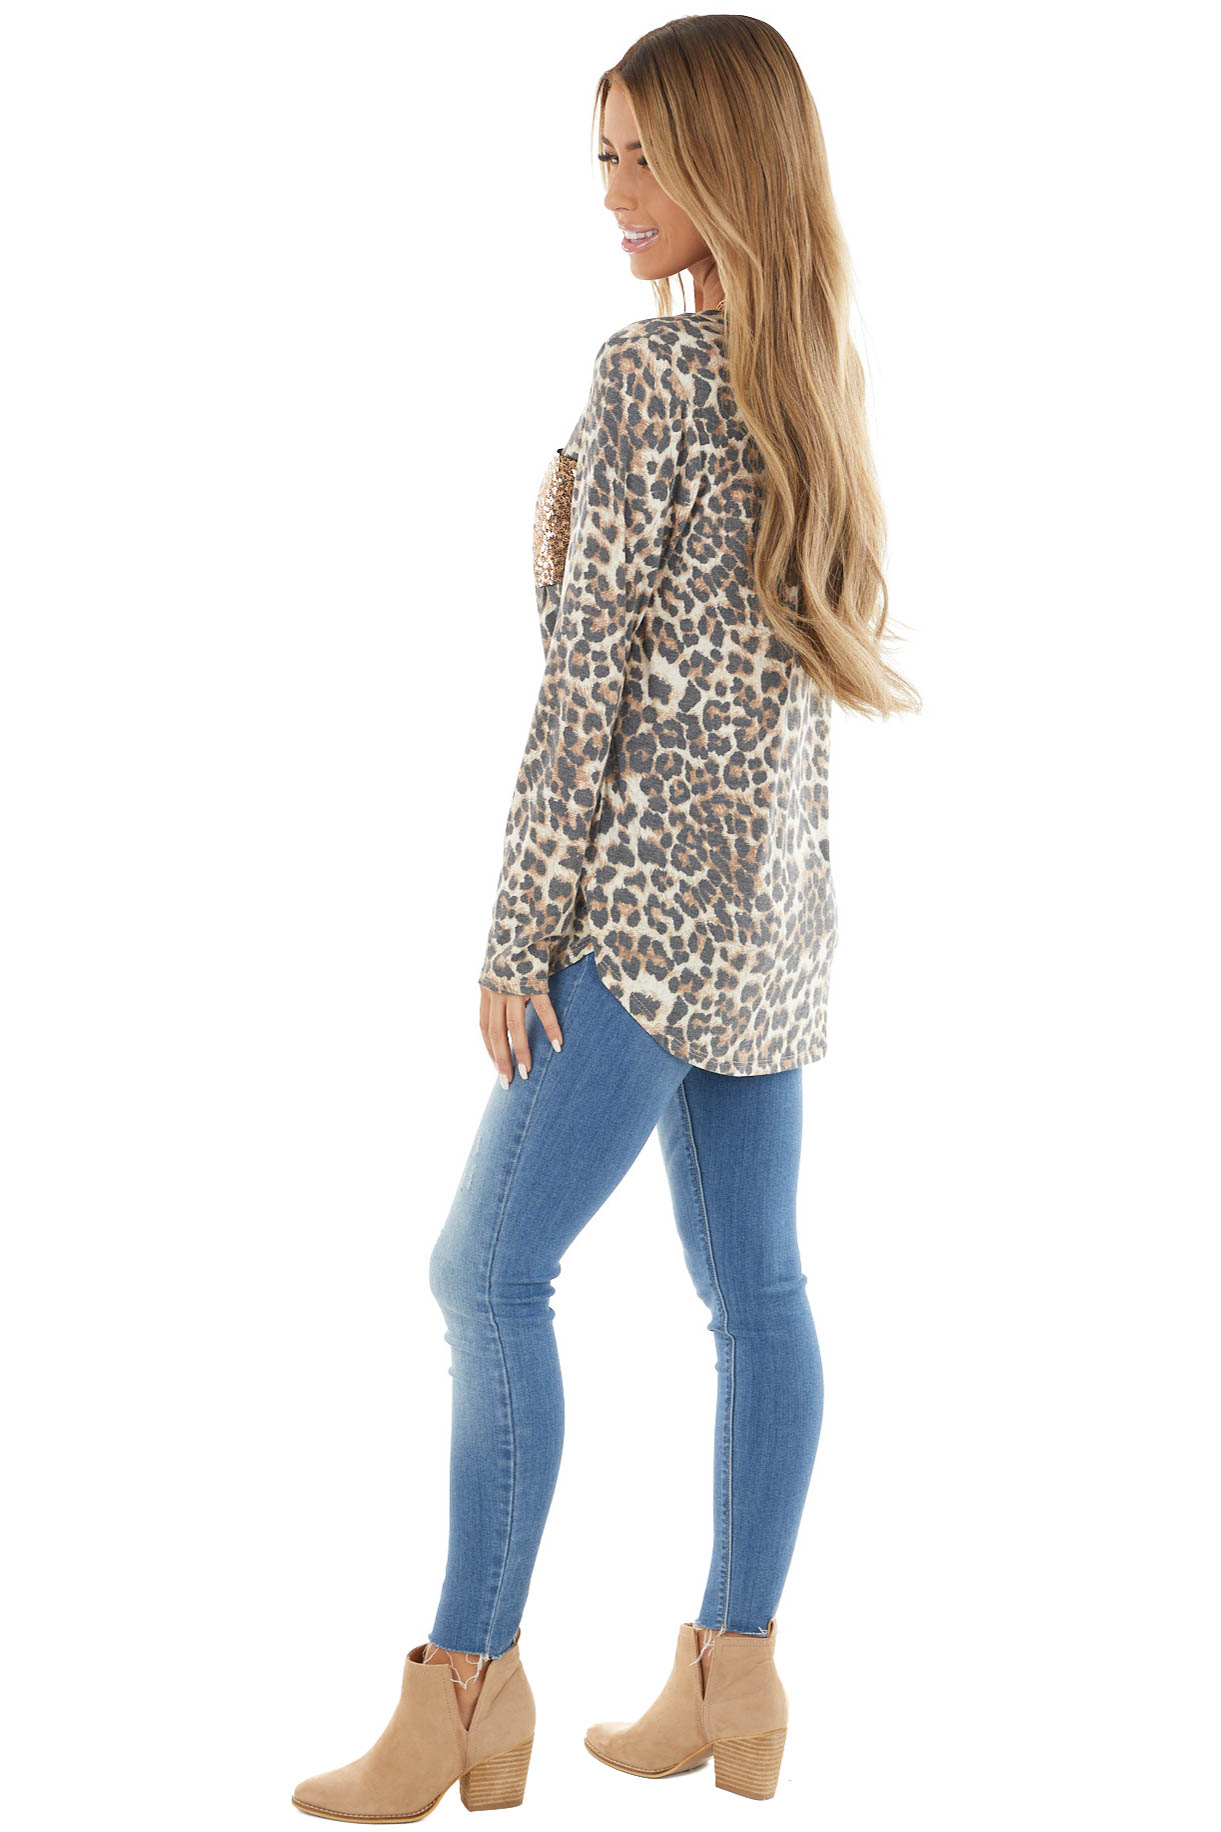 Charcoal Leopard Print Long Sleeve Top with Sequins Detail